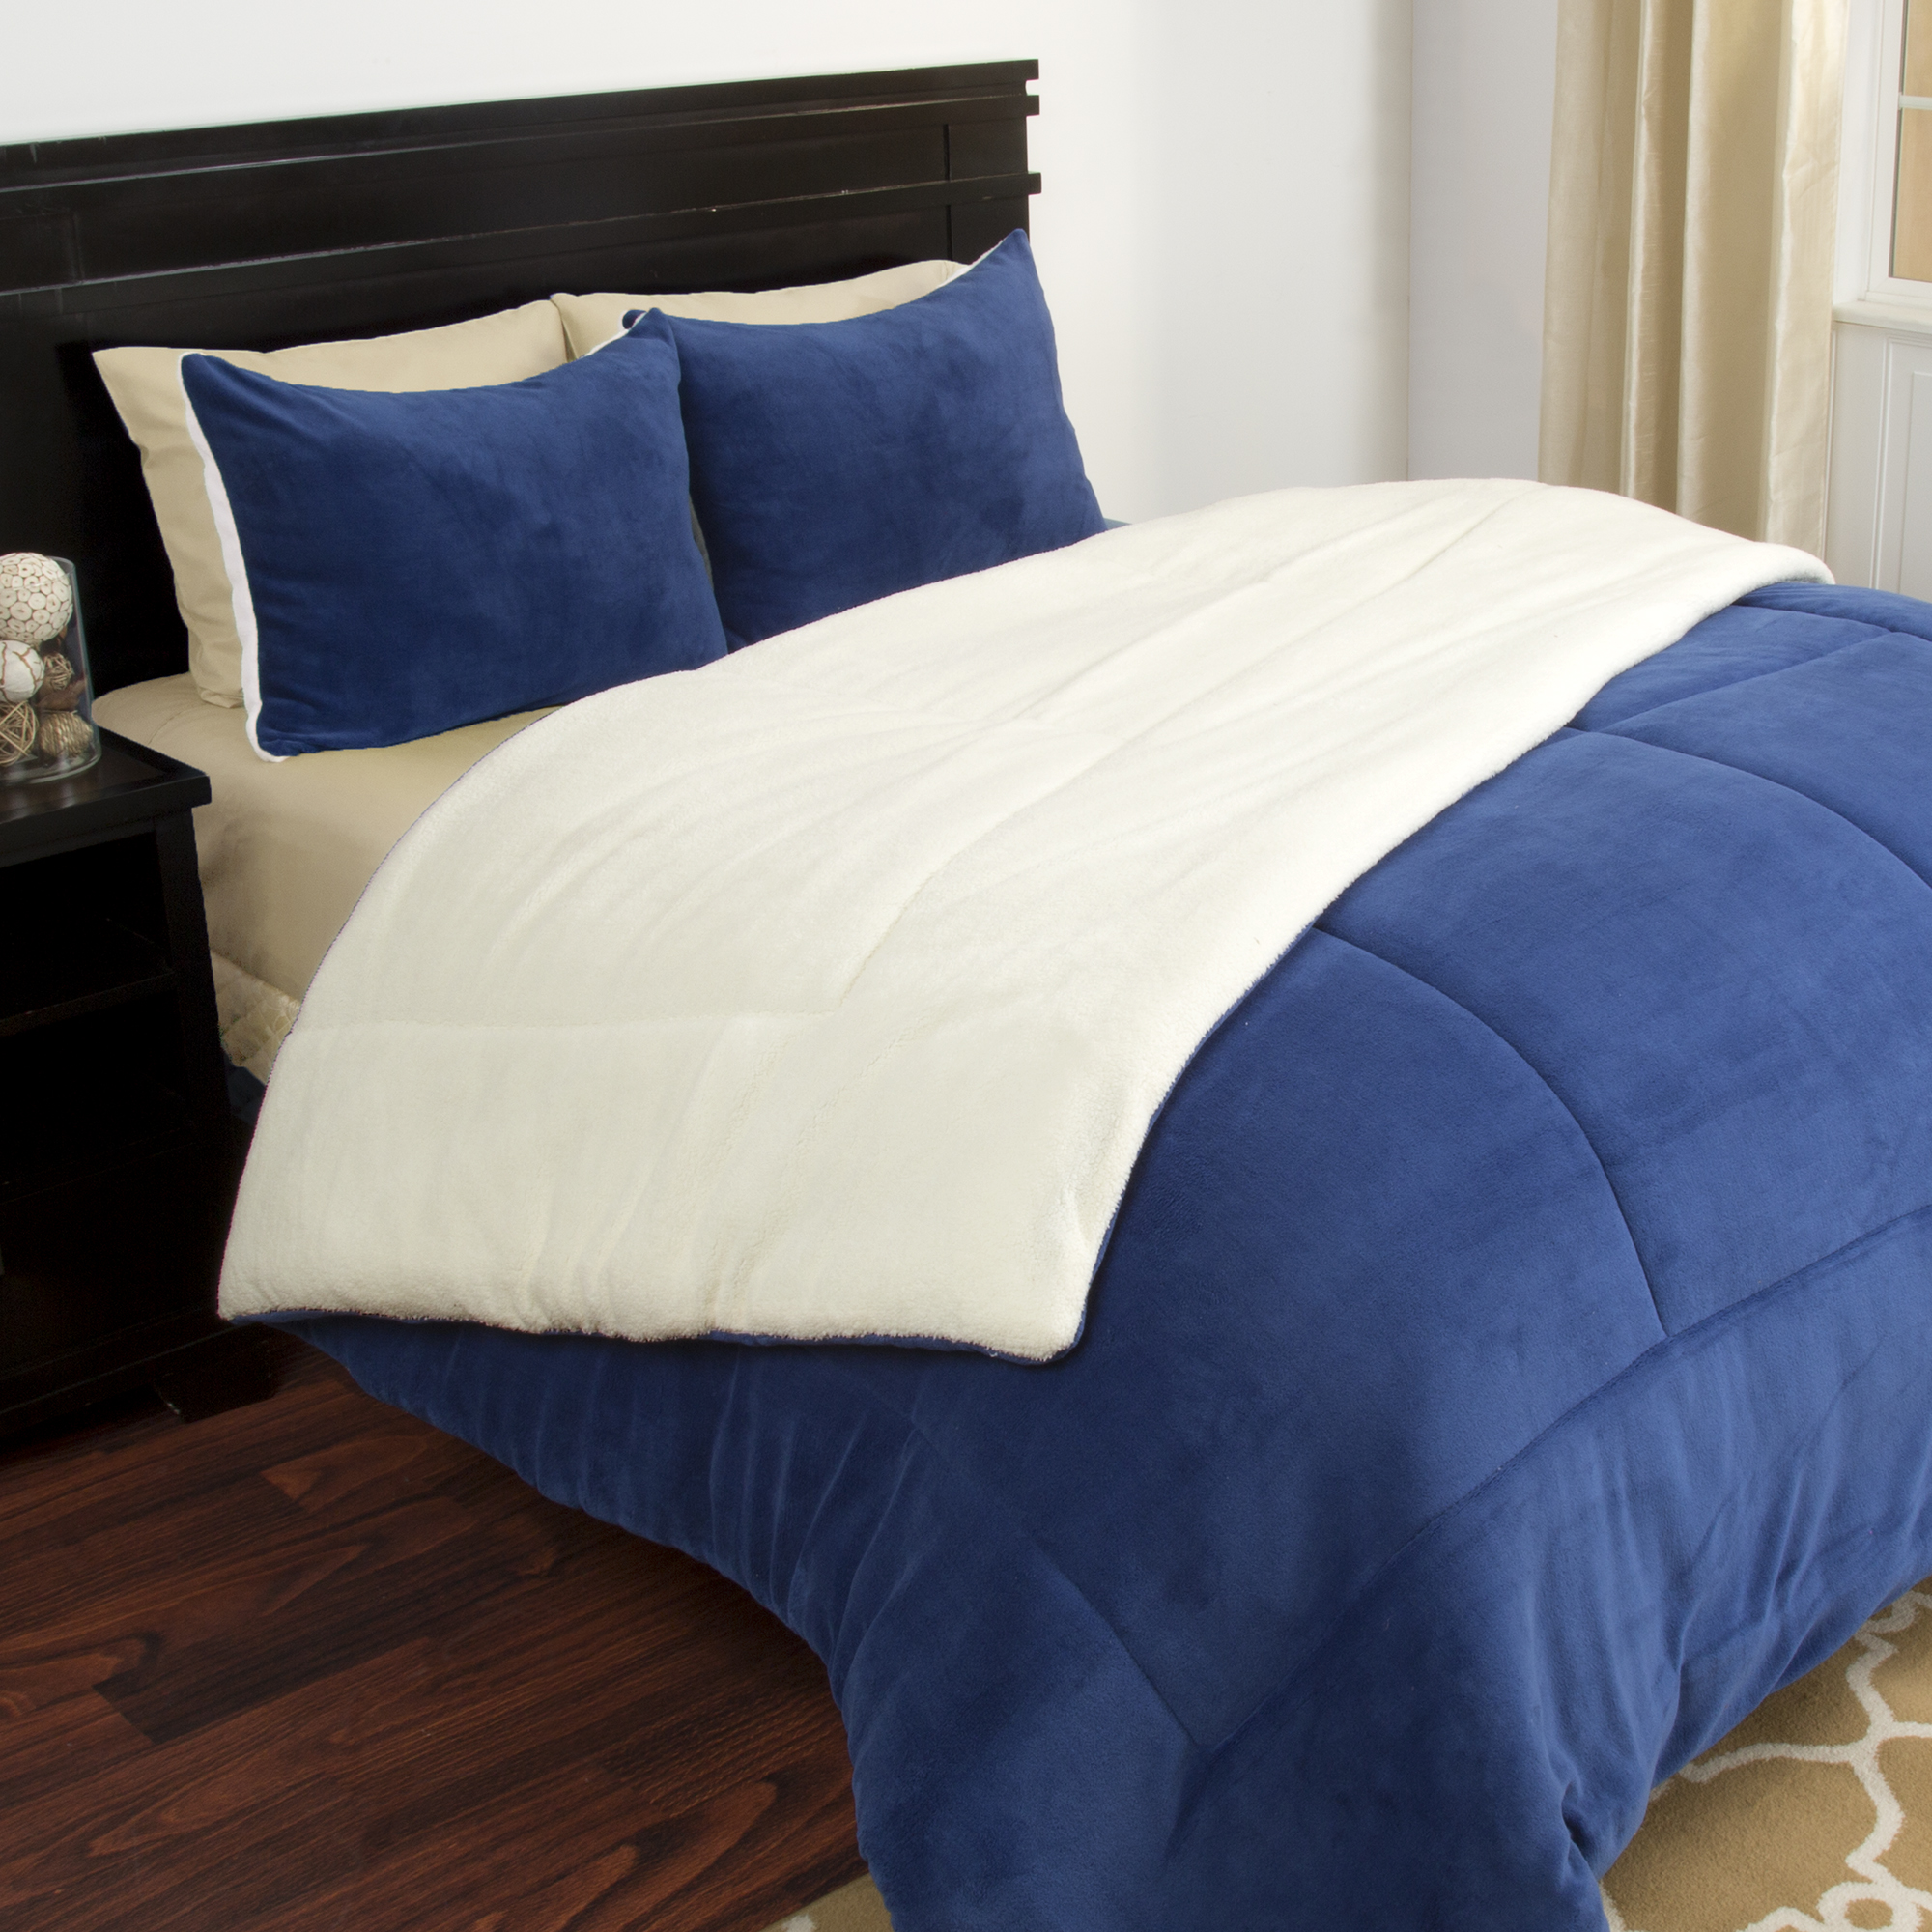 Navy Blue Comforter | Bed Comforter Sets | Navy and Coral Bedding